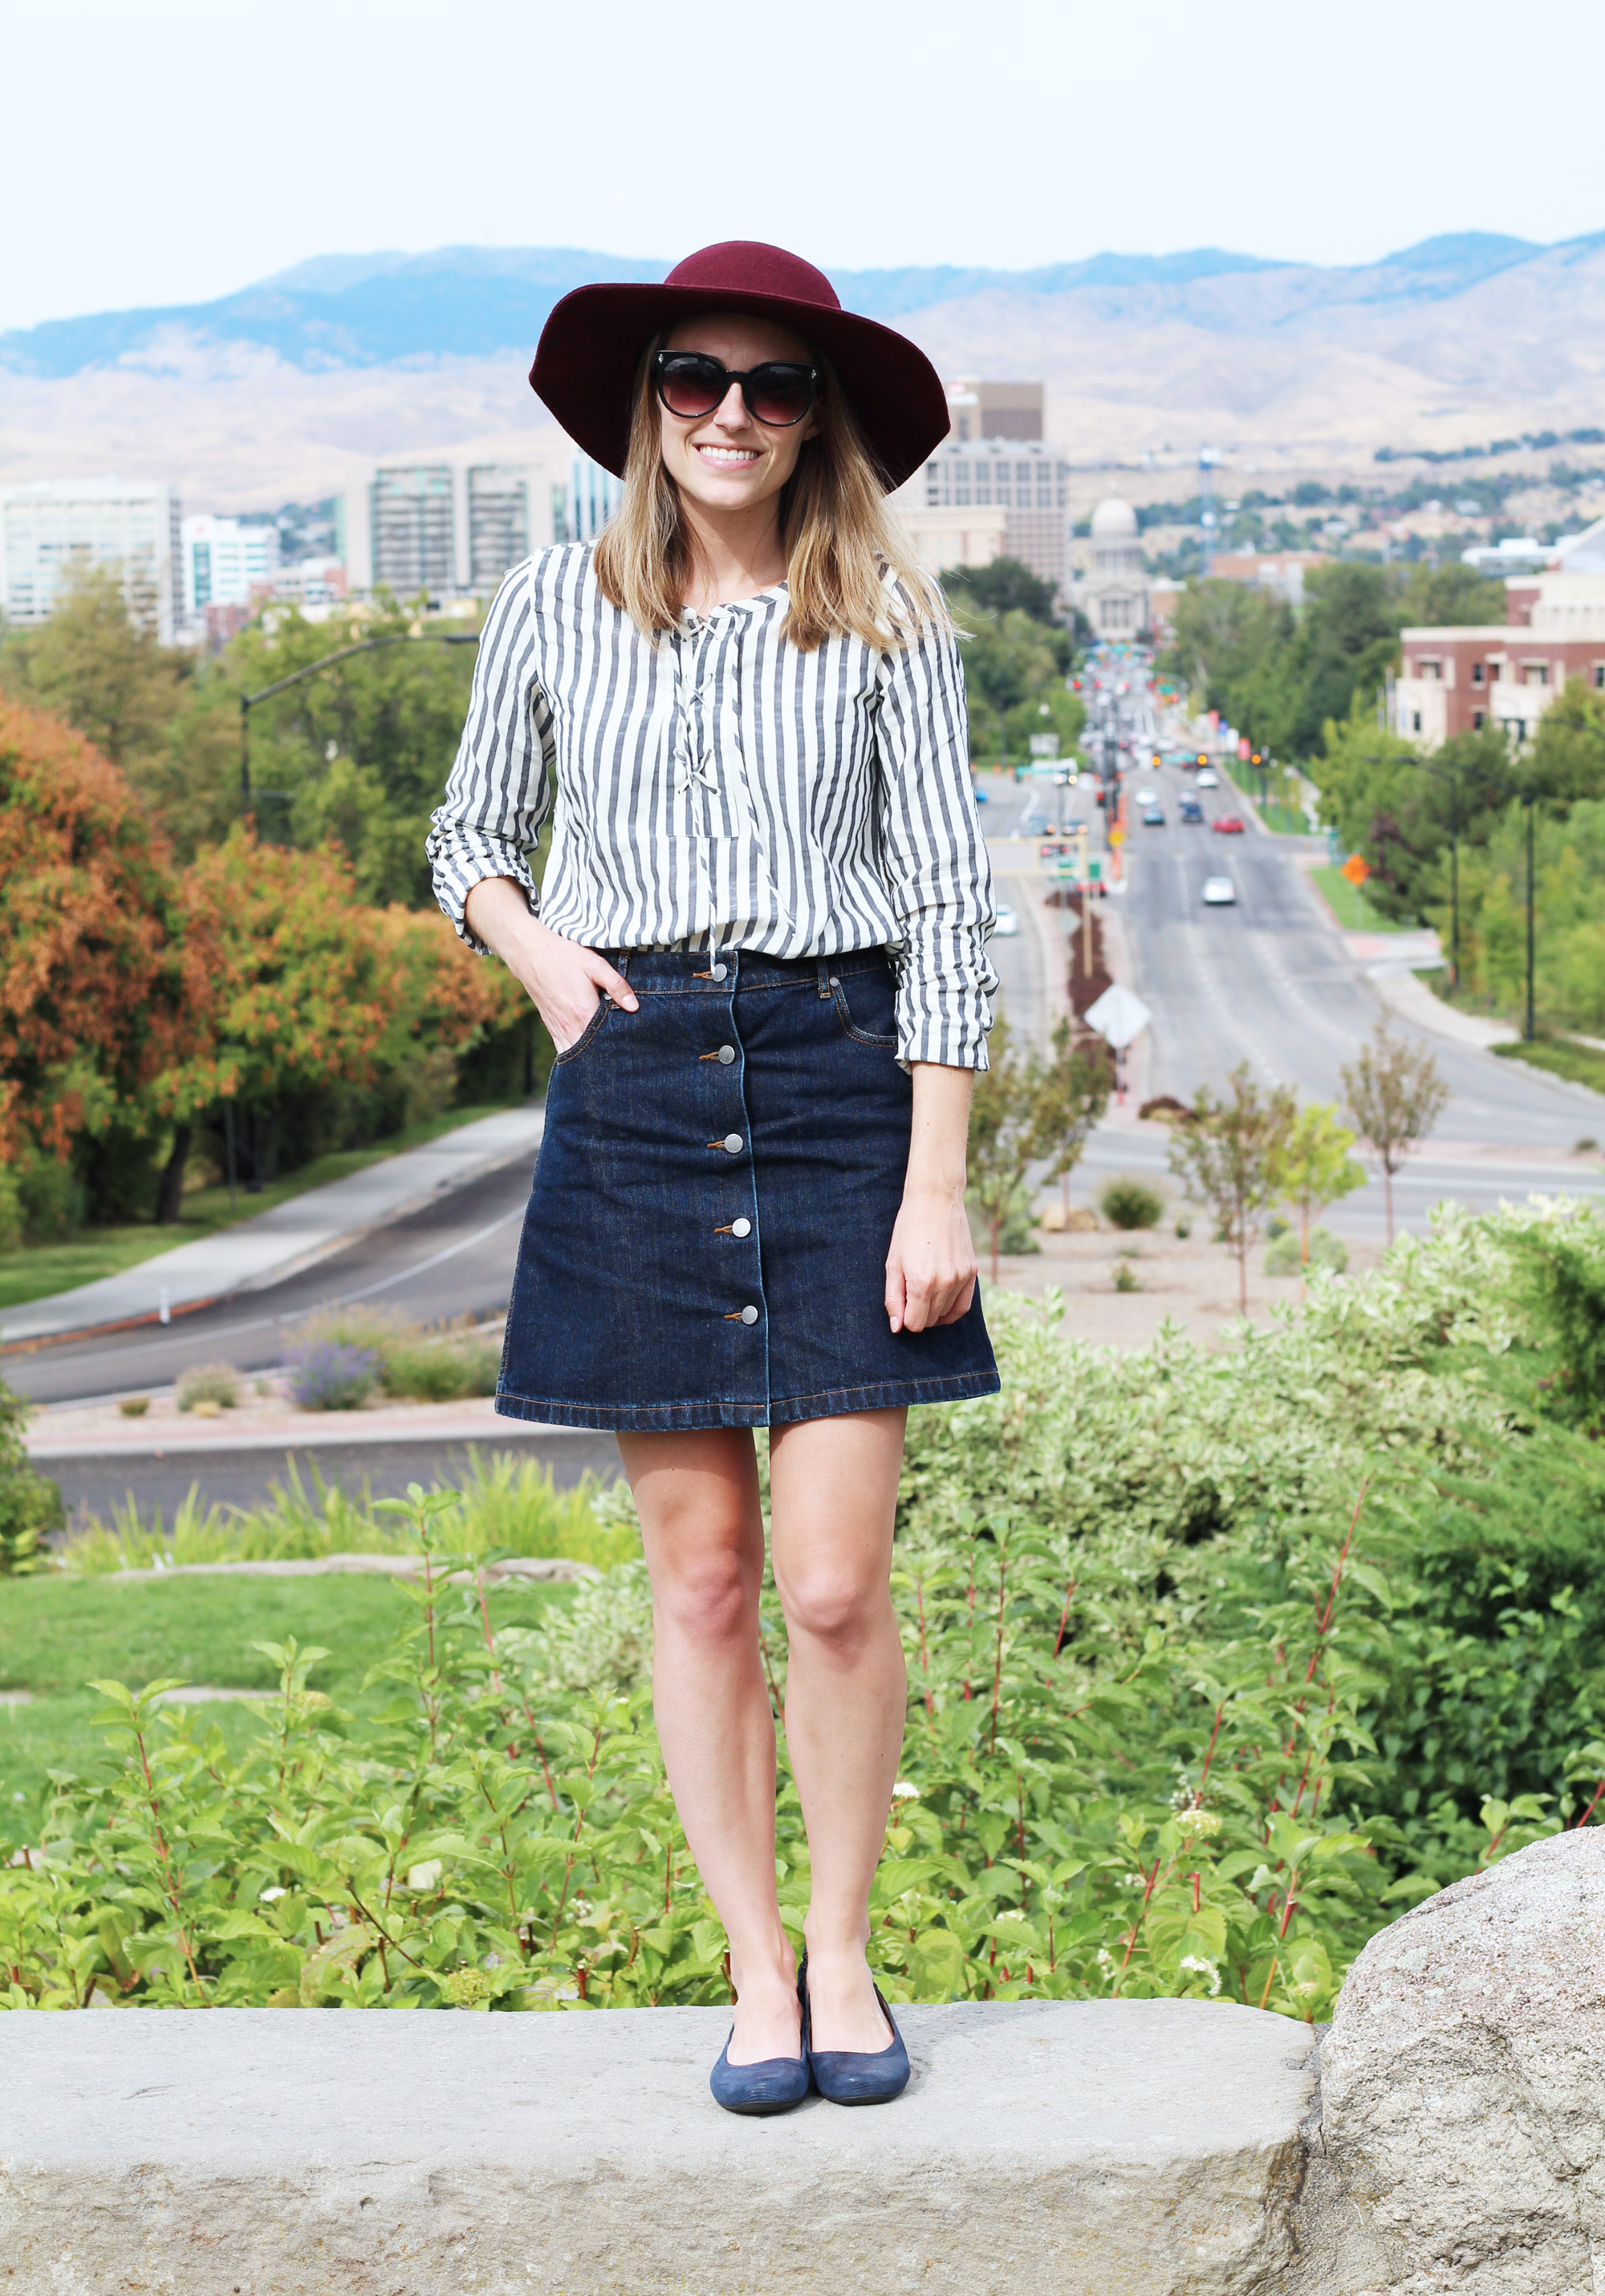 Navy Earthies 'Tolo' textured suede flats with lace-up blouse, denim skirt, floppy hat — Cotton Cashmere Cat Hair